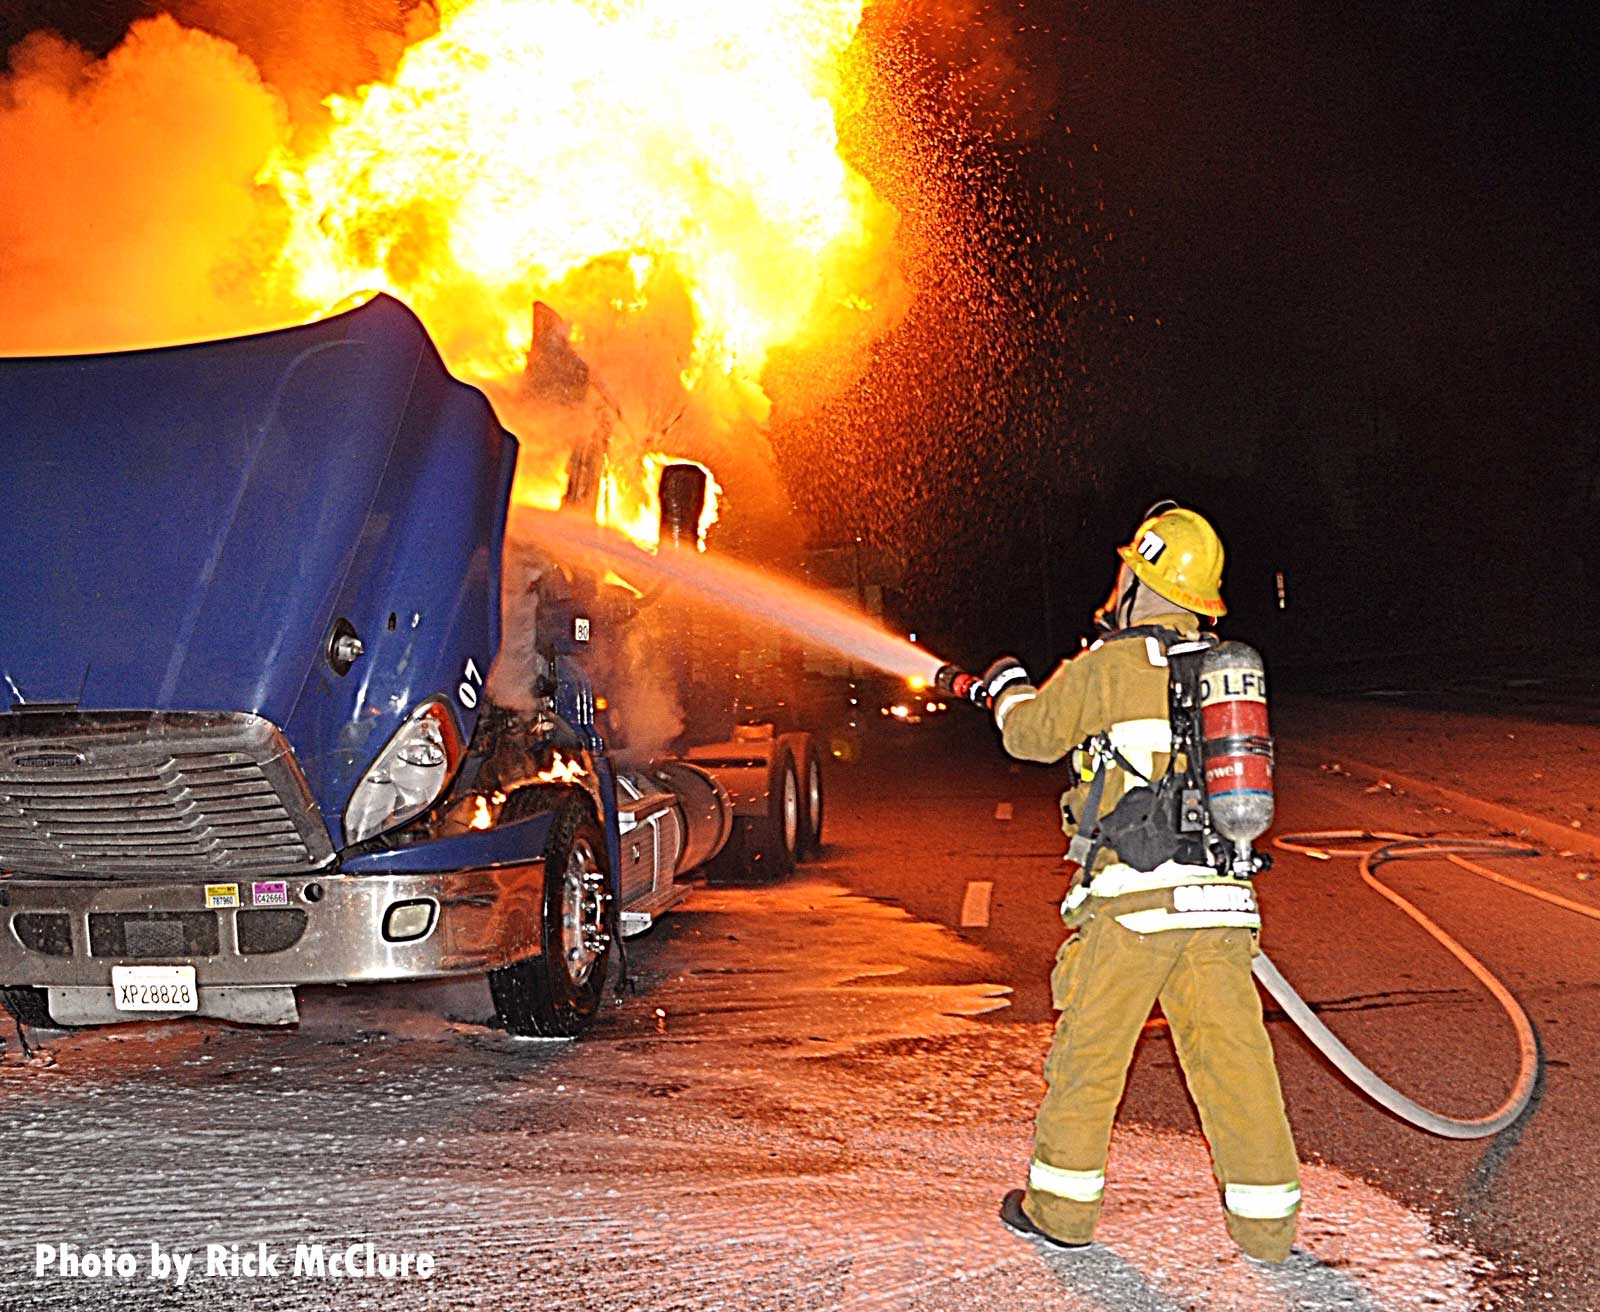 A City of Los Angeles firefighter puts water on a burning tractor trailer